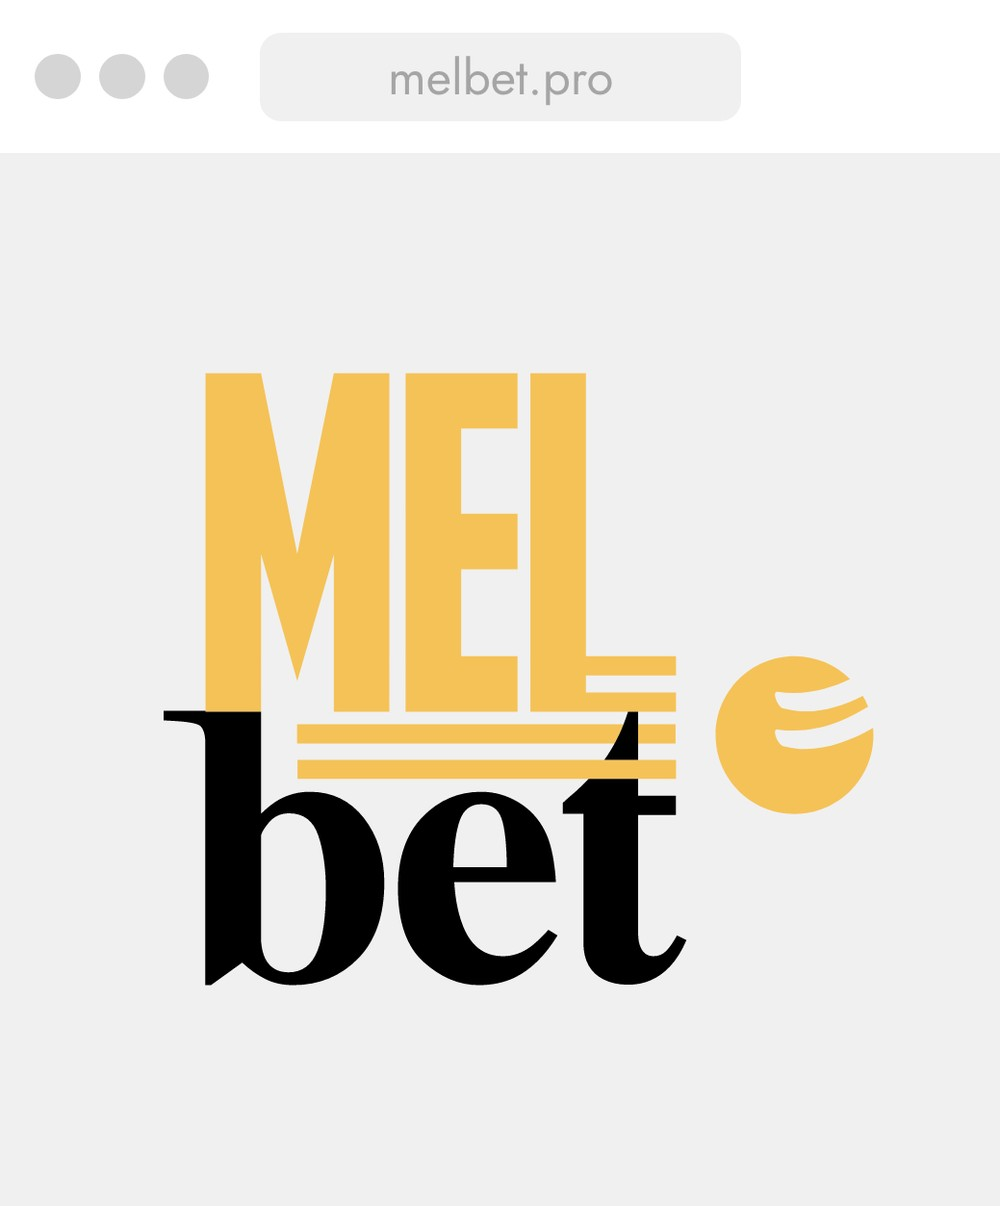 Project of Melbet